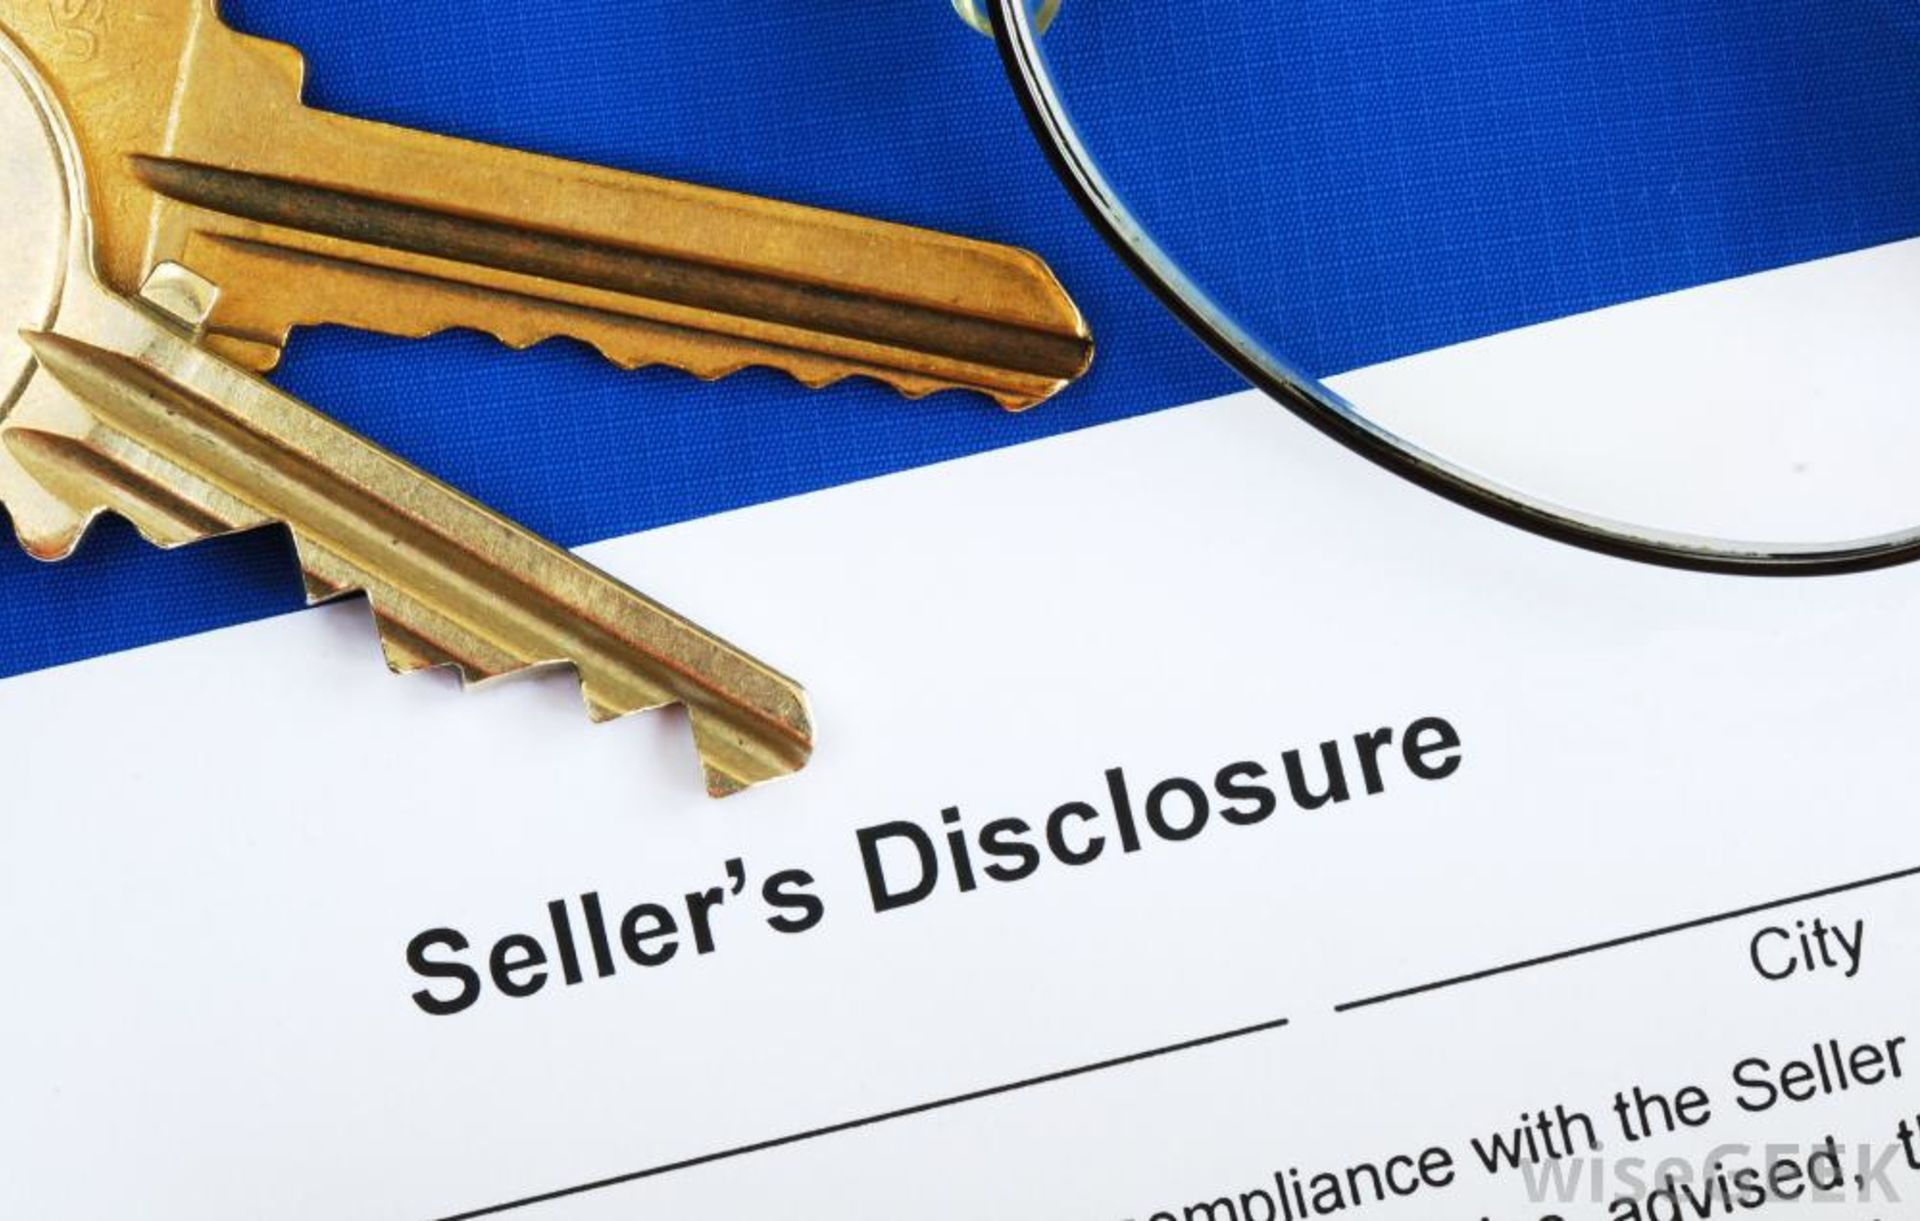 How Much Should Be Disclosed?